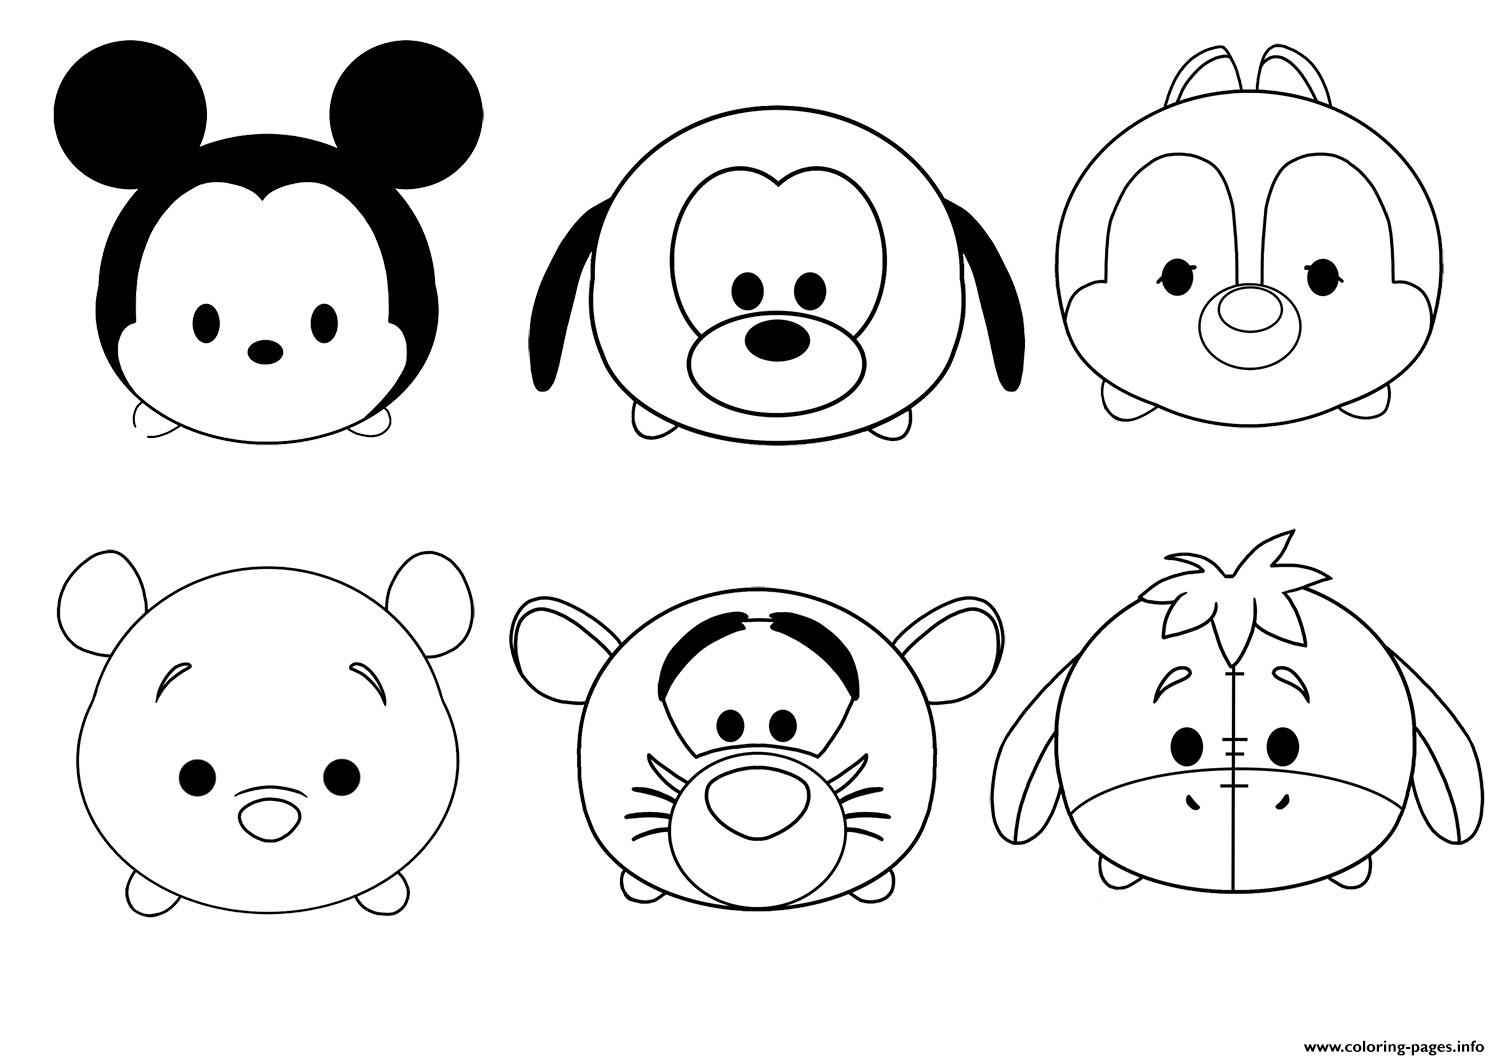 Colorear Tsum Tsum Cenicienta Tsum Tsum Dibujo Para: Tsum Tsum Disney Colouring Pages Coloring Pages Printable